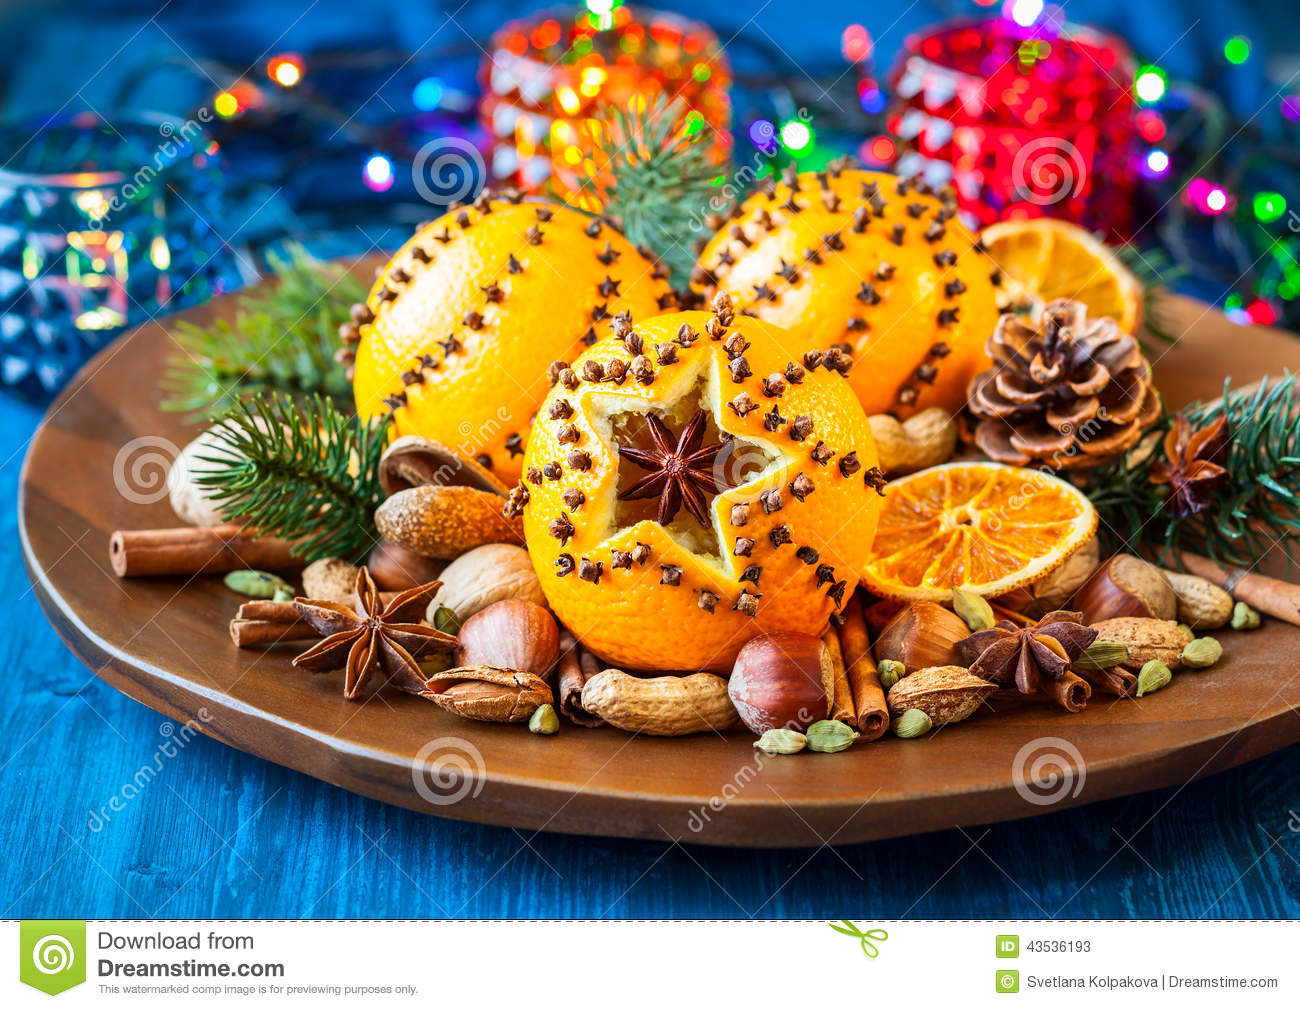 christmas orangesspices and nuts - Christmas Oranges